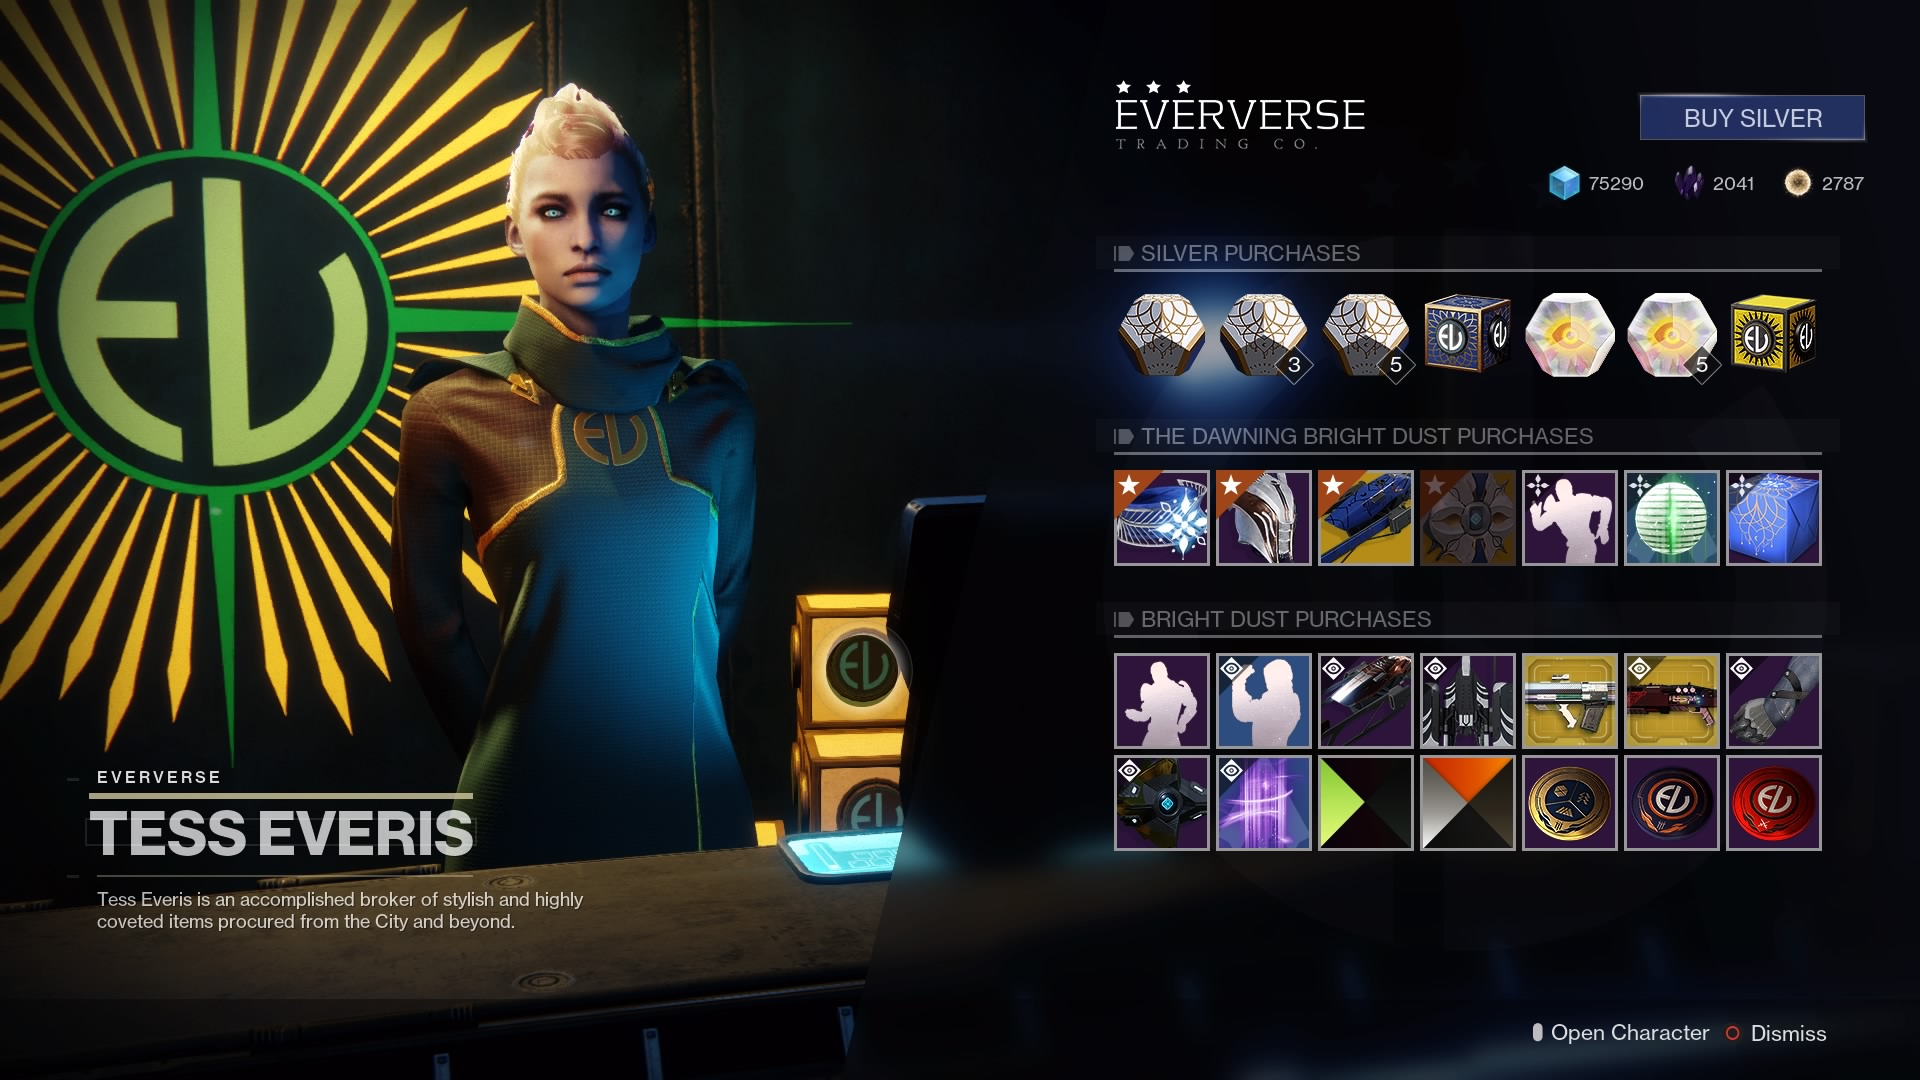 The Eververse in-game storefront